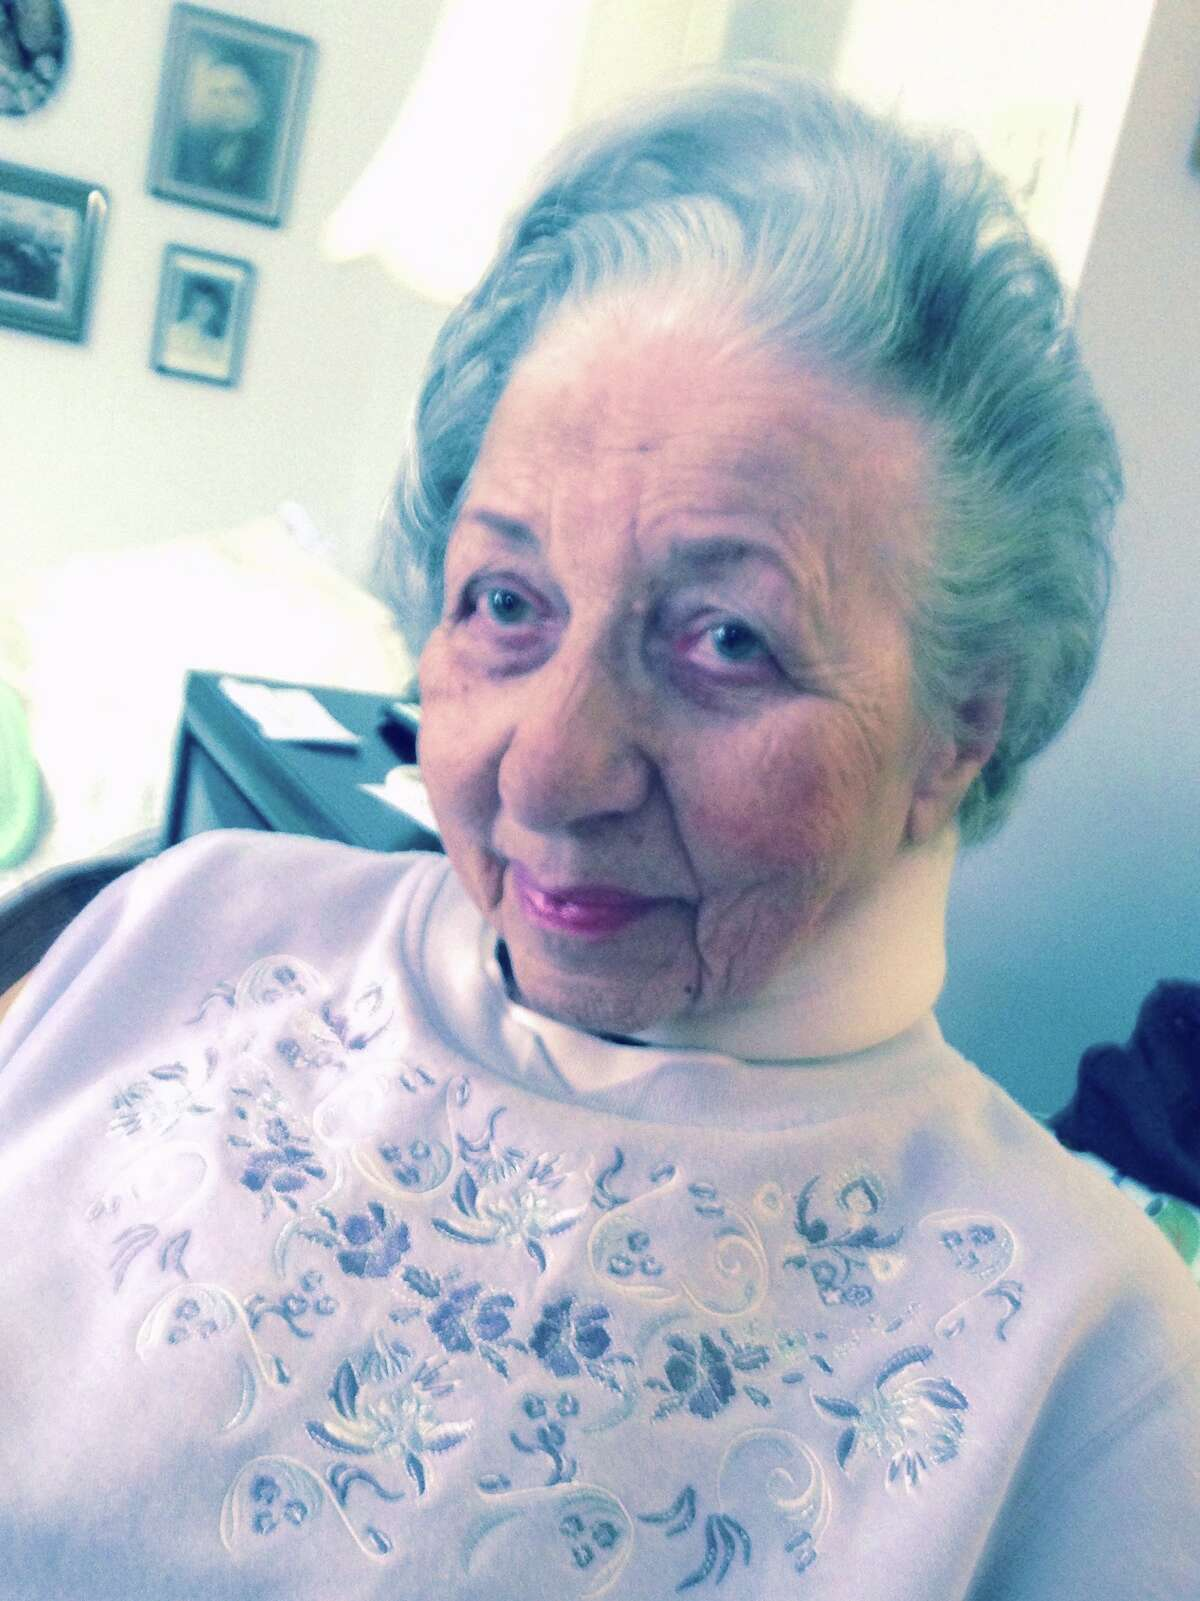 On Saturday, Feb. 28, 2015, Sofia Dooley, of the Eddy Memorial in Troy, joins the ranks of the centenarians. Born Sofia Belotte, she is the daughter of an Italian immigrant and has lived in the Troy area most of her life. She earned a bacholer of arts from Marymount College and an MS in education at SUNY Albany. She taught elementary school in the East Greenbush system. She enjoys singing, painting, traveling and the arts and is an accomplished pianist. As past president of the Lake George Opera and one of the founding members of the Rensselaer County Council for the Arts, she not only volunteered in promoting the arts, but also has worked as an advocate for persons with chronic mental illness at the Albany County Mental Health Association. Sofia, widowed, was married to James Dooley, A son, Robert James Dooley, lives in California and a sister, Marie Purtell, lives in Troy.. (Submitted photo)